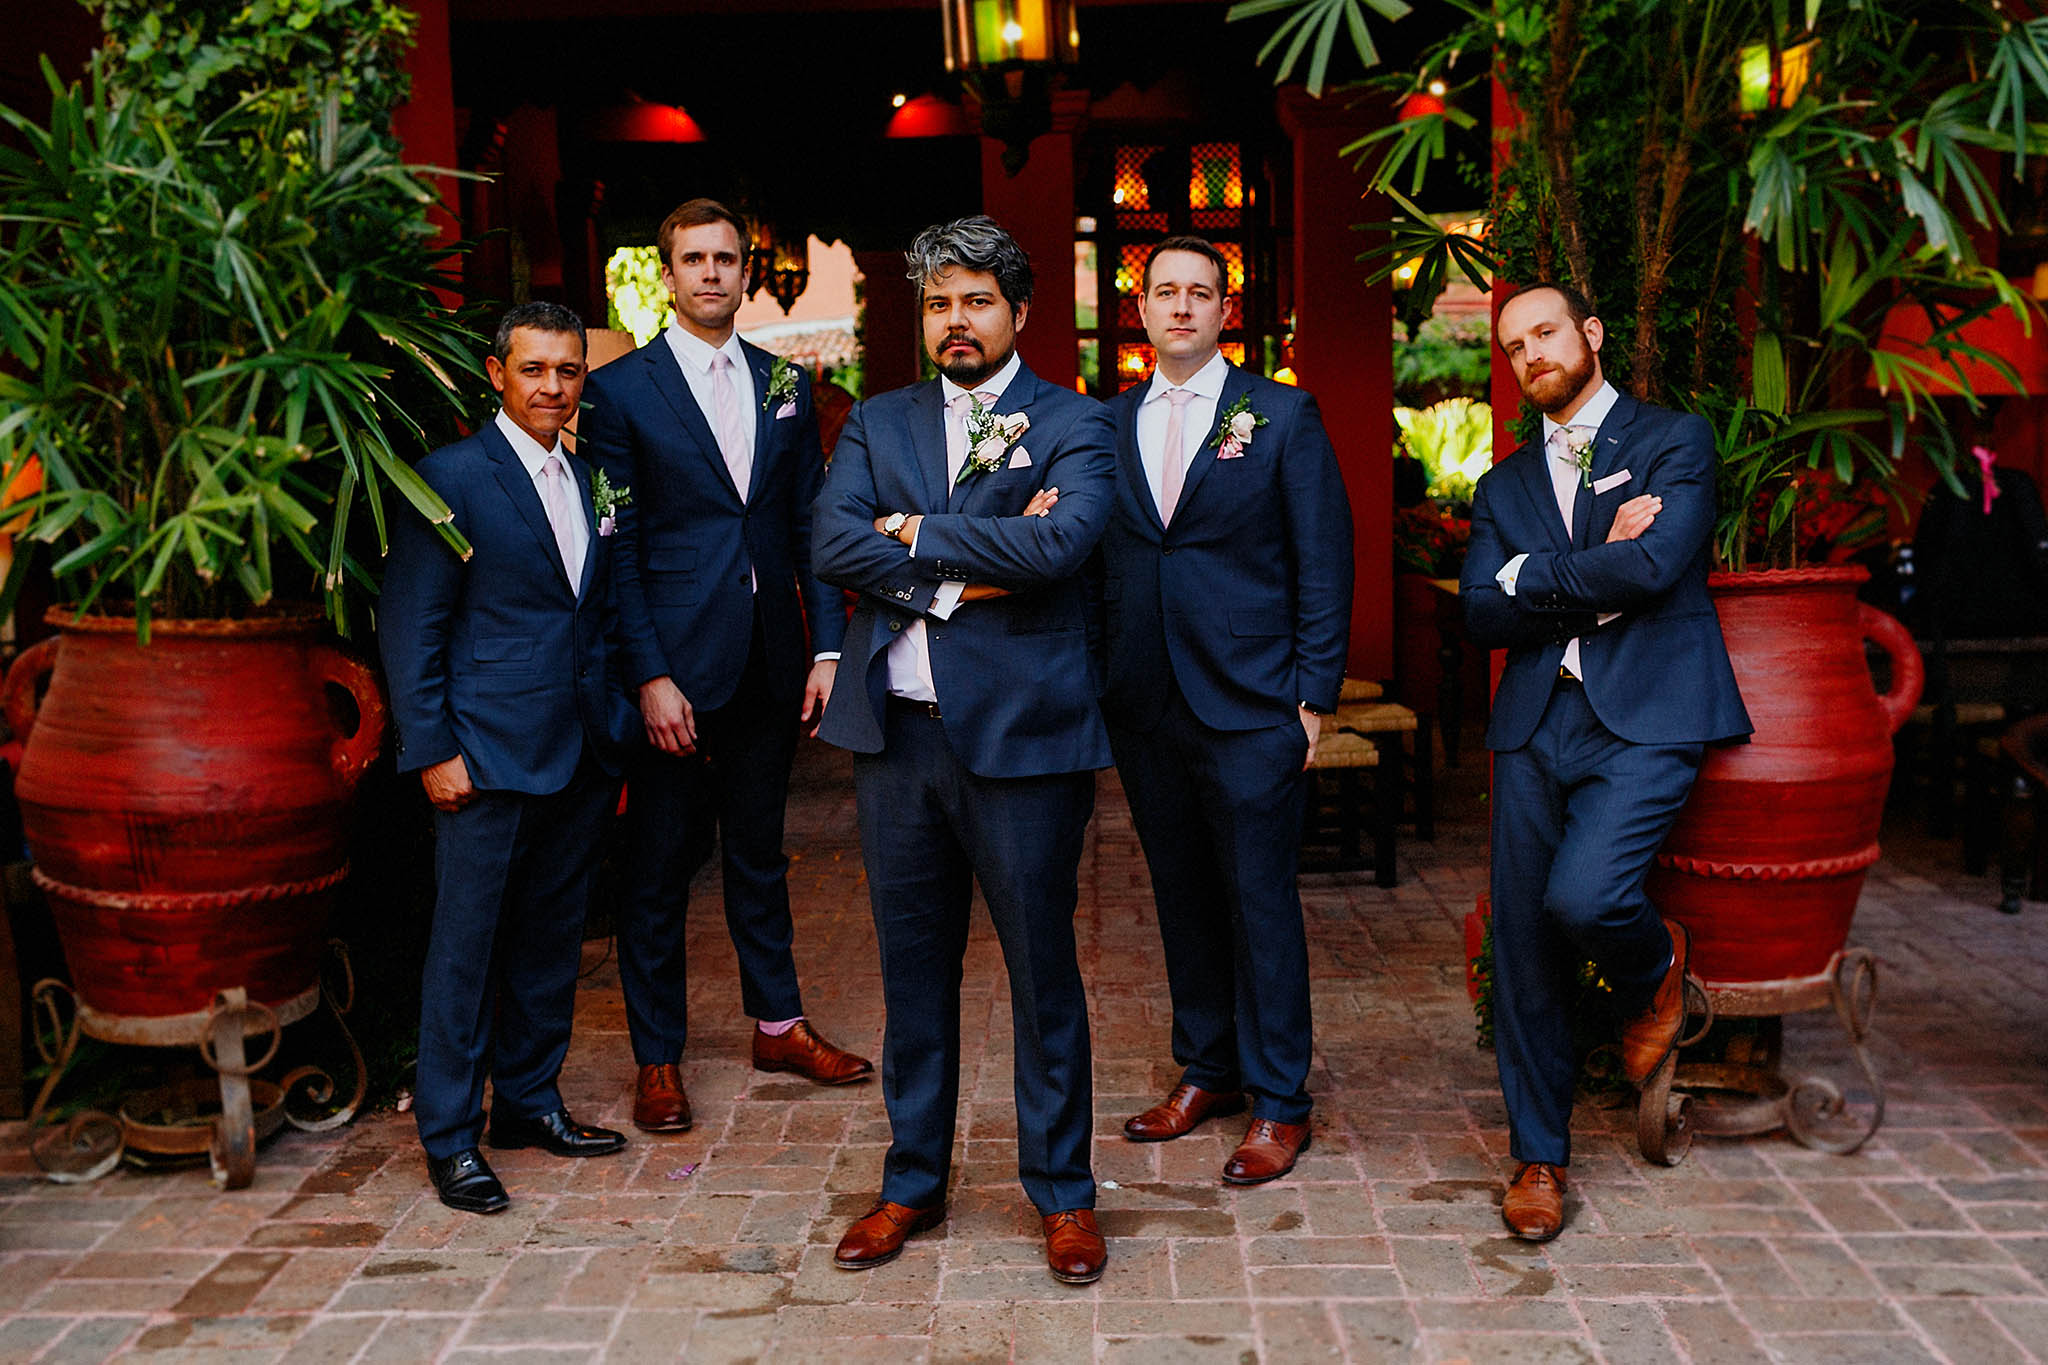 Destination wedding Casa Hyder